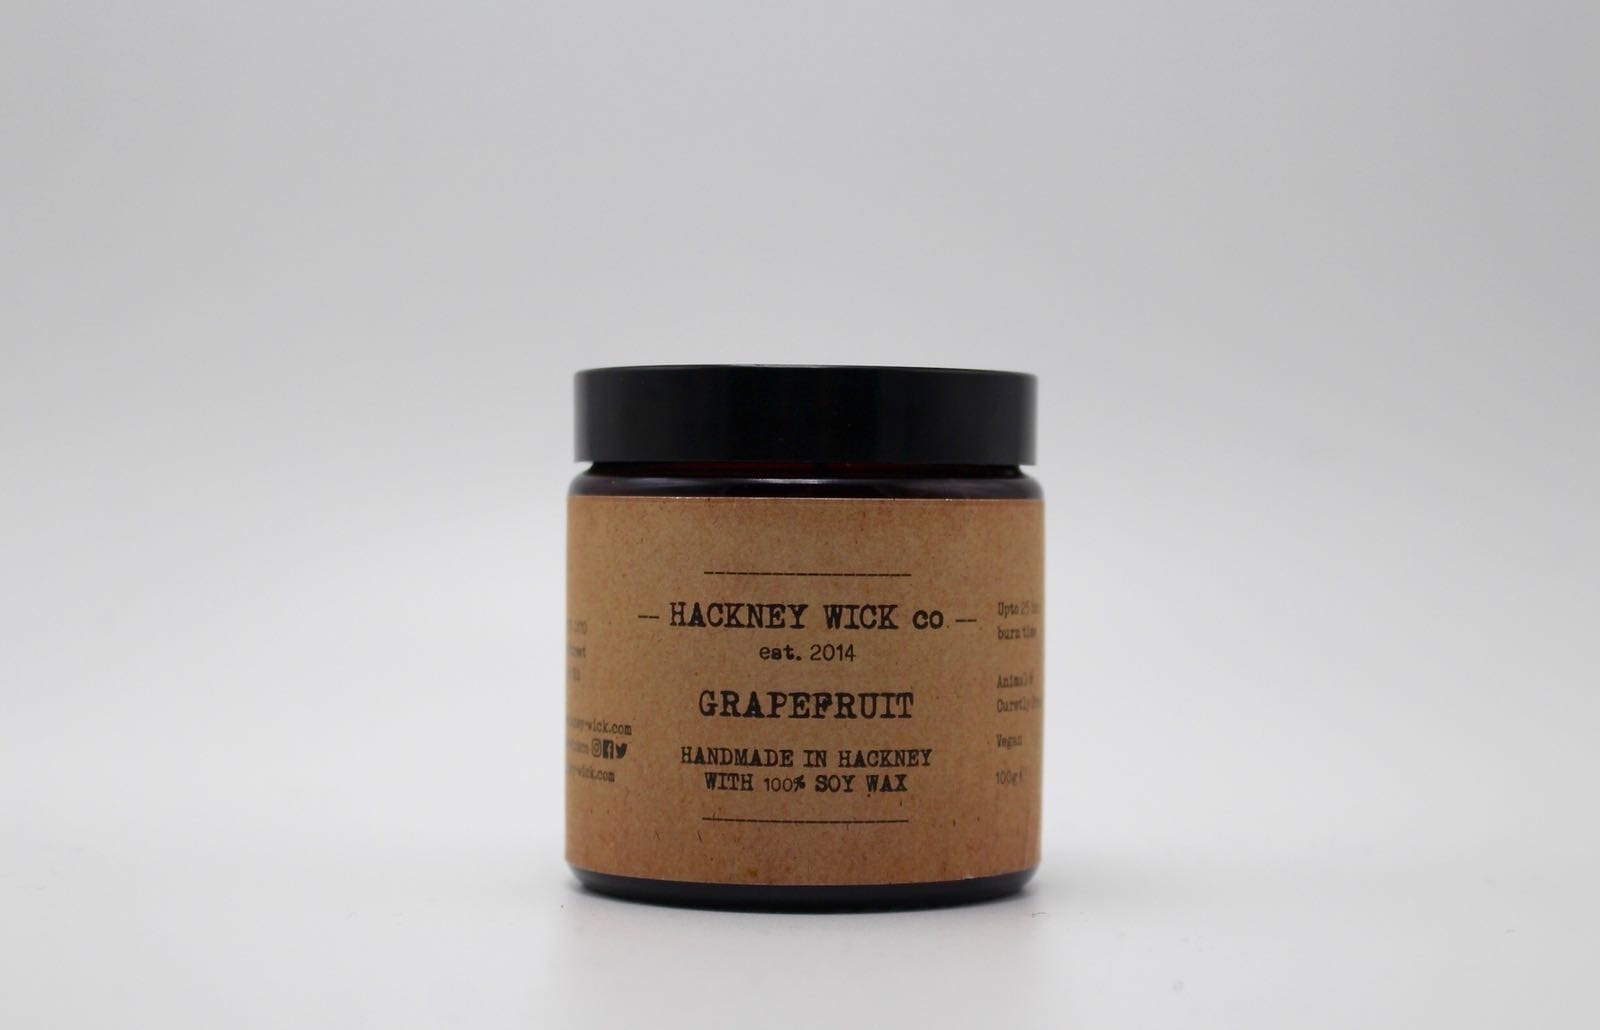 Hackney Wick Co. Grapefruit Candle 100g